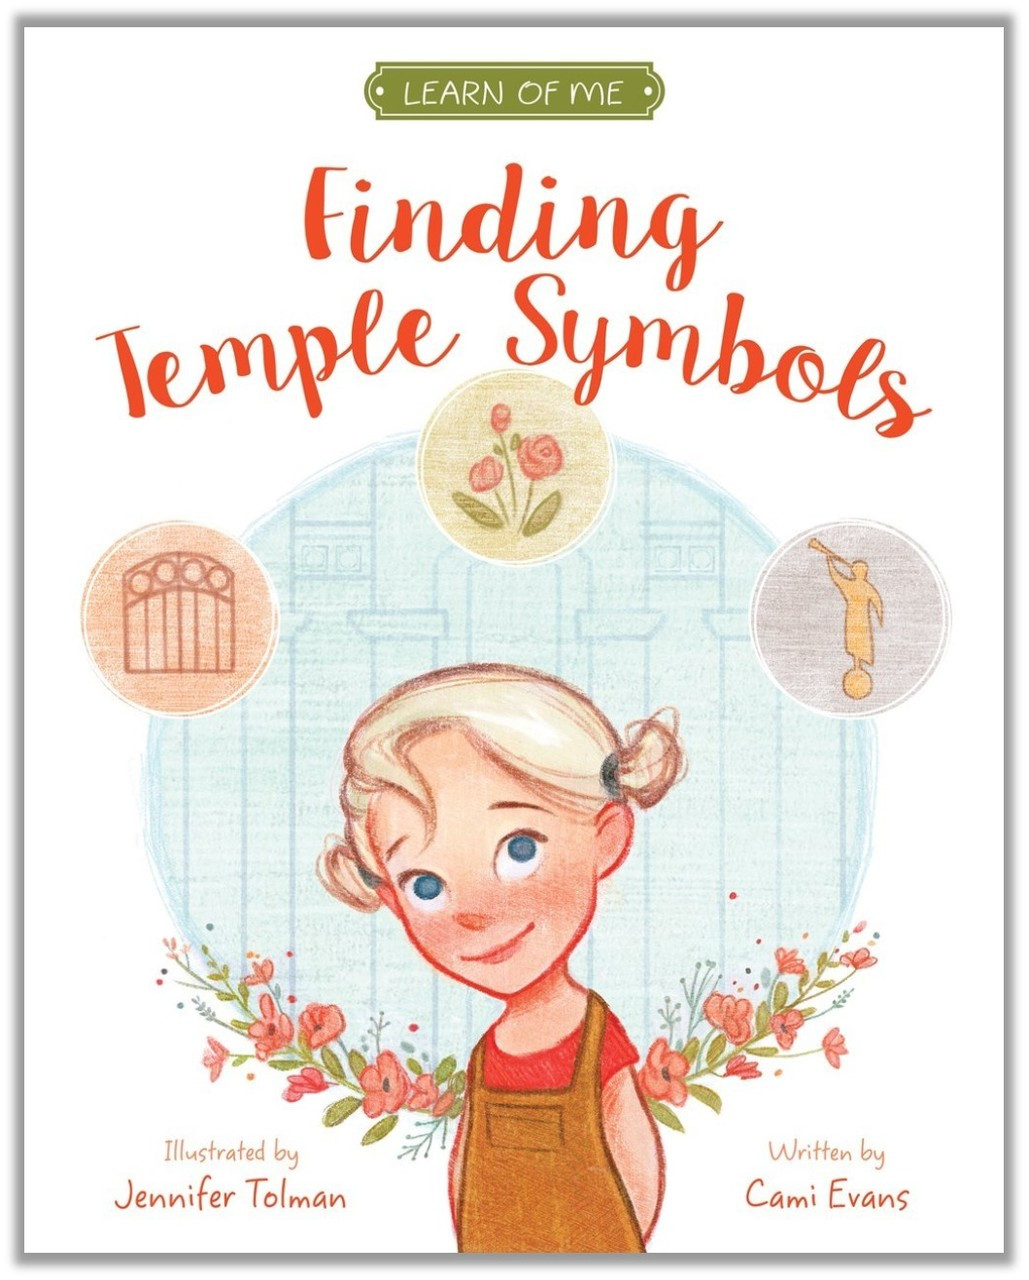 Finding Temple Symbols: Learn of Me (Hardcover)